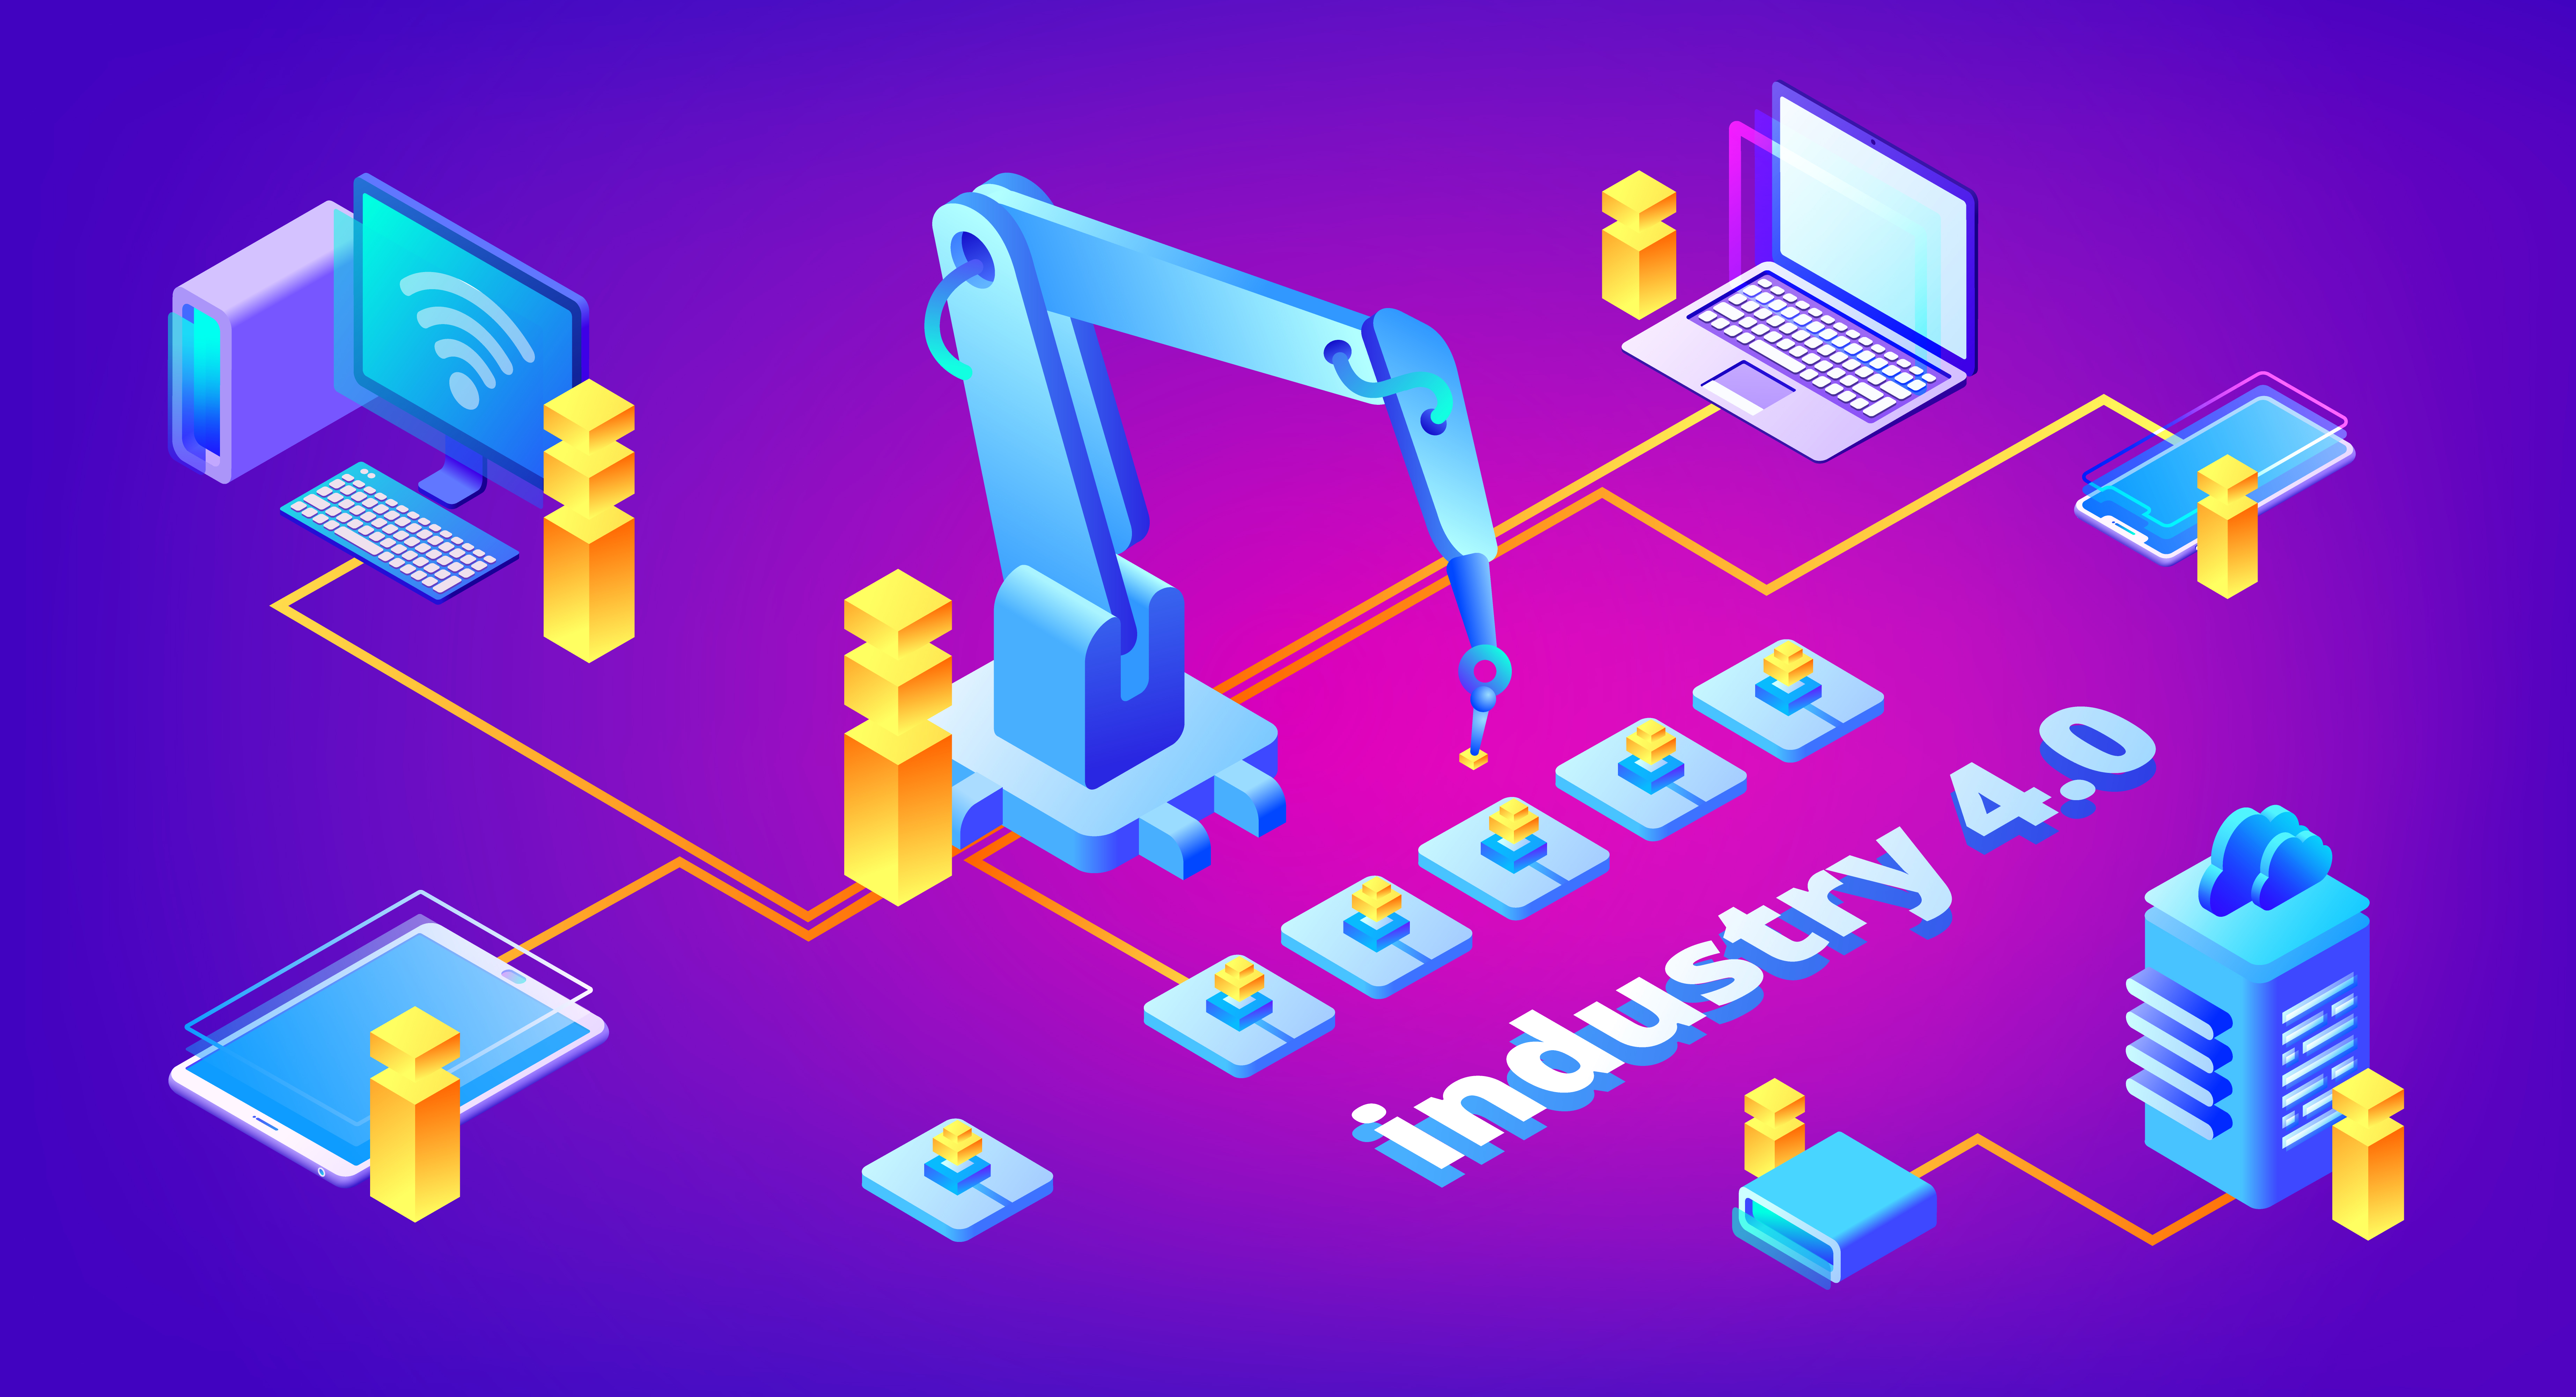 Virtual Reality technologies in Industry 4.0